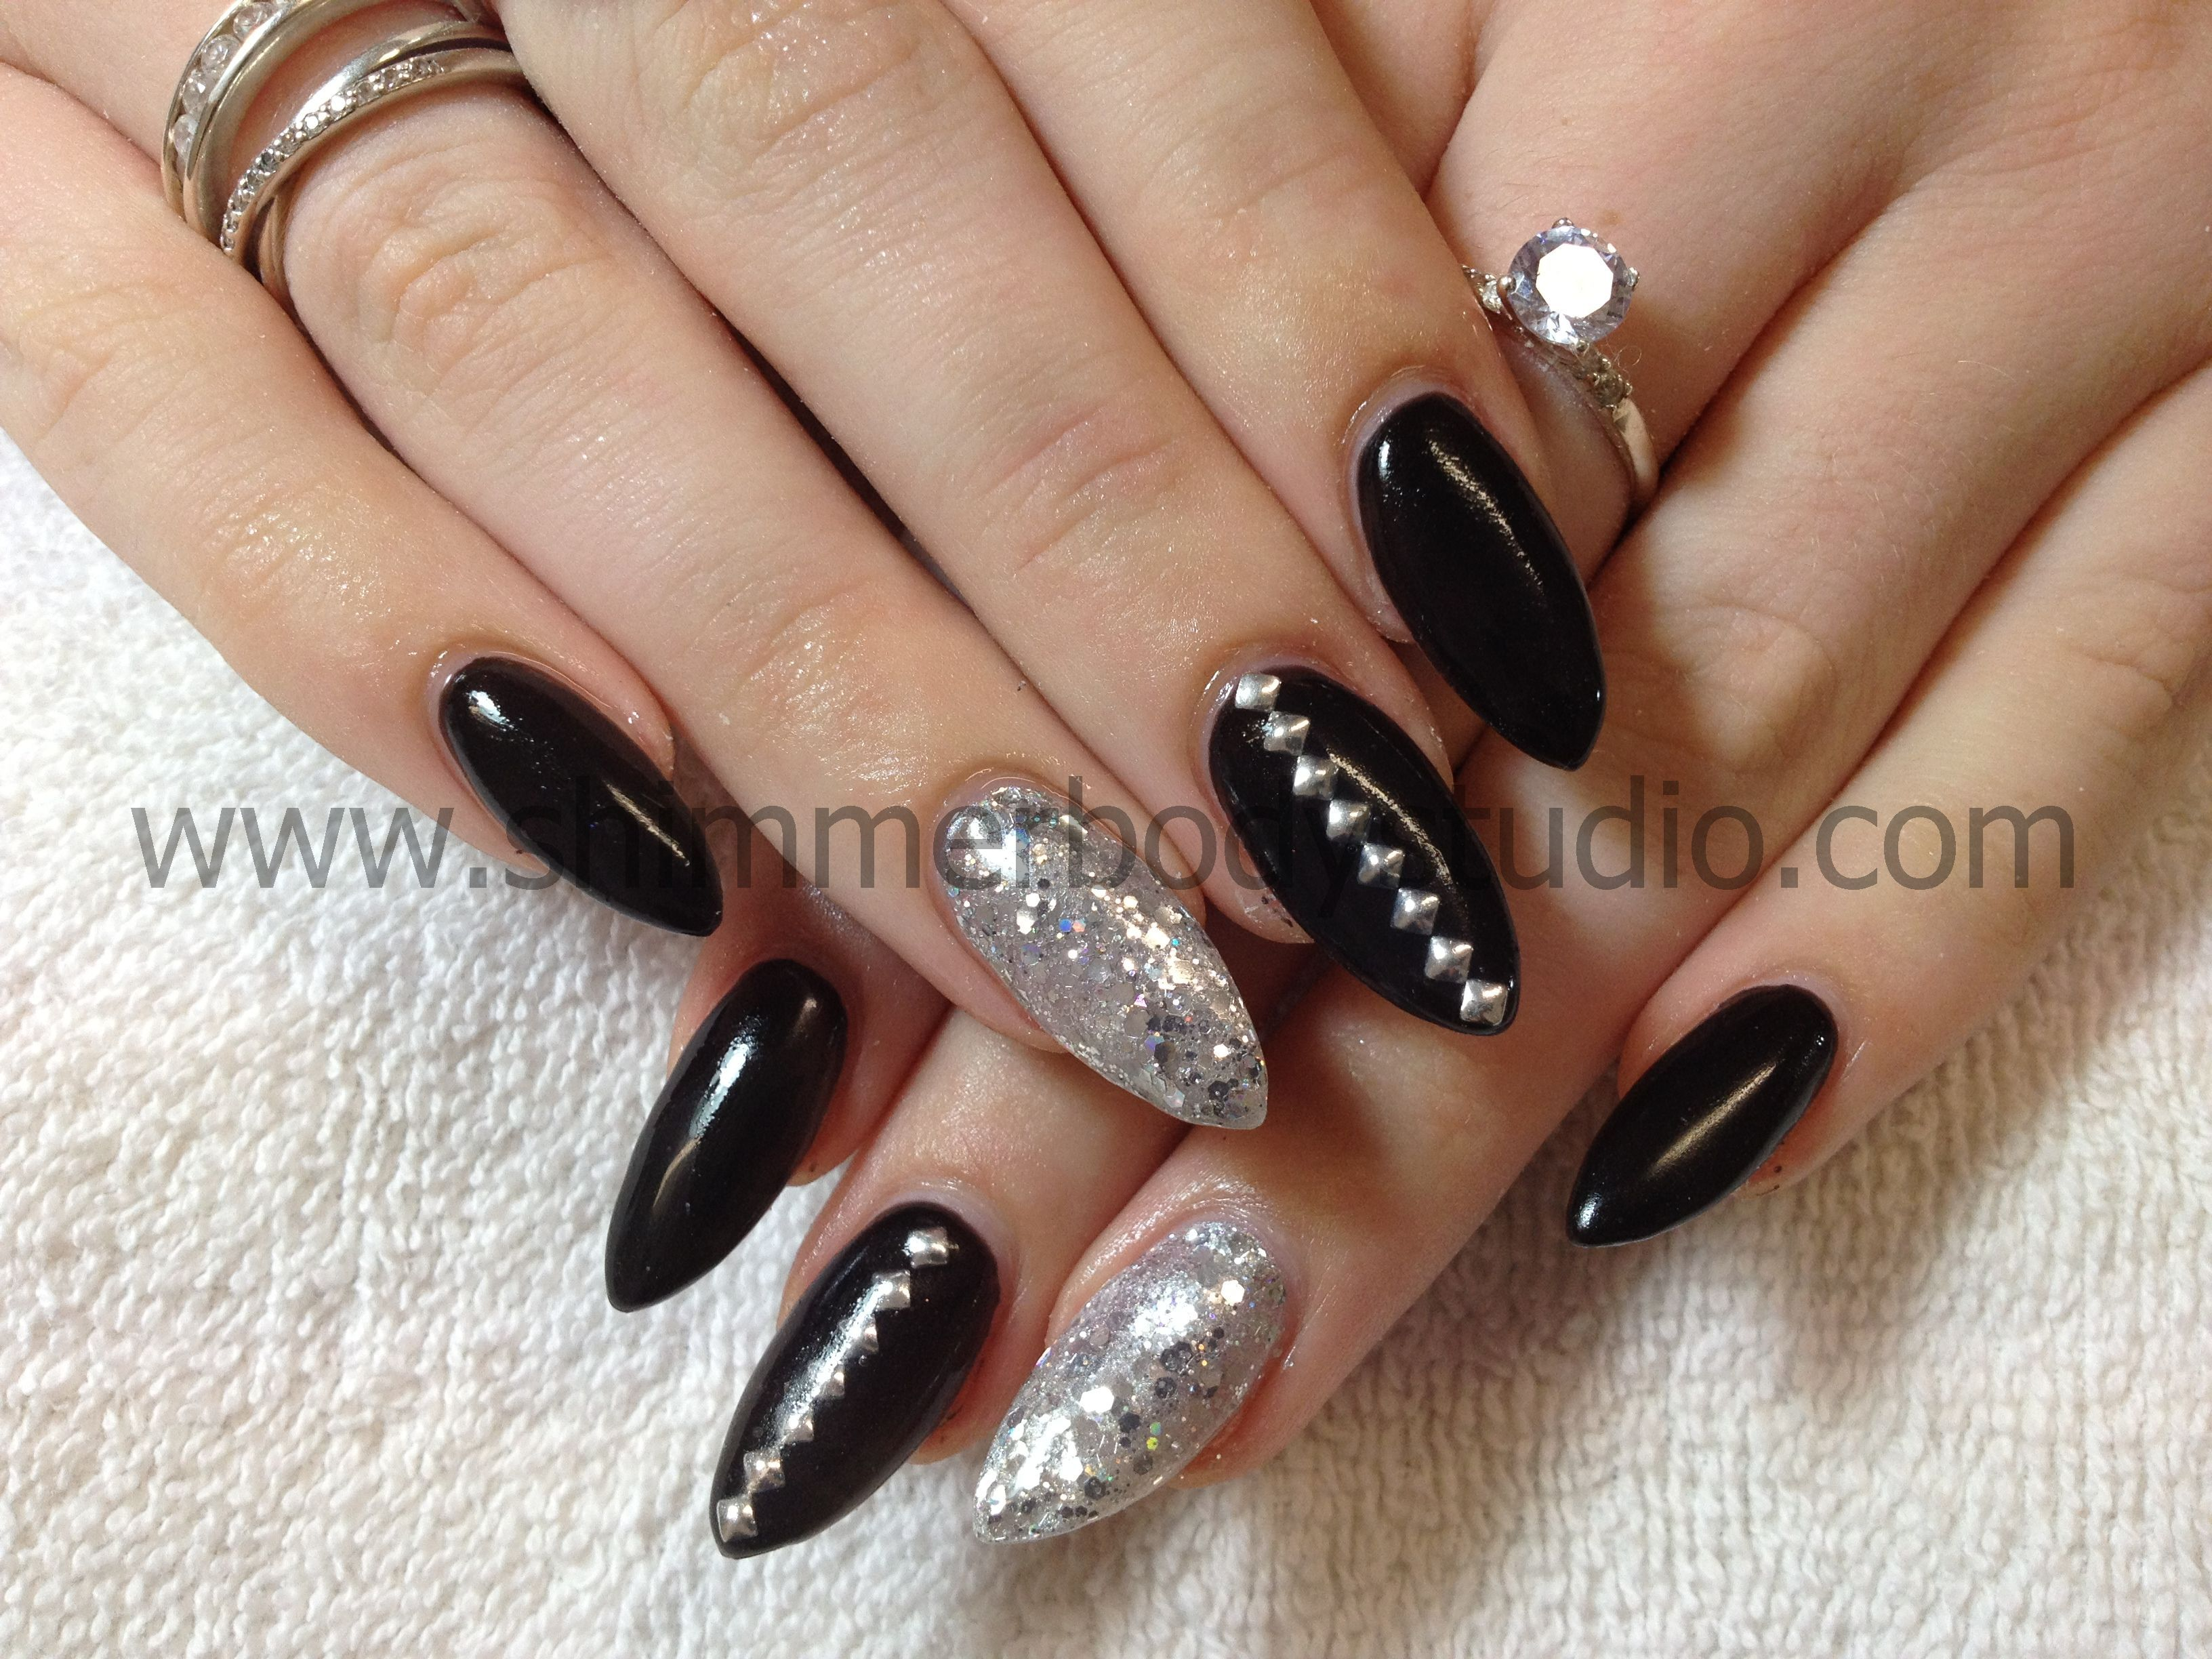 Gel nails, pointed nails, almond nails, stiletto nails, glitter nail ...